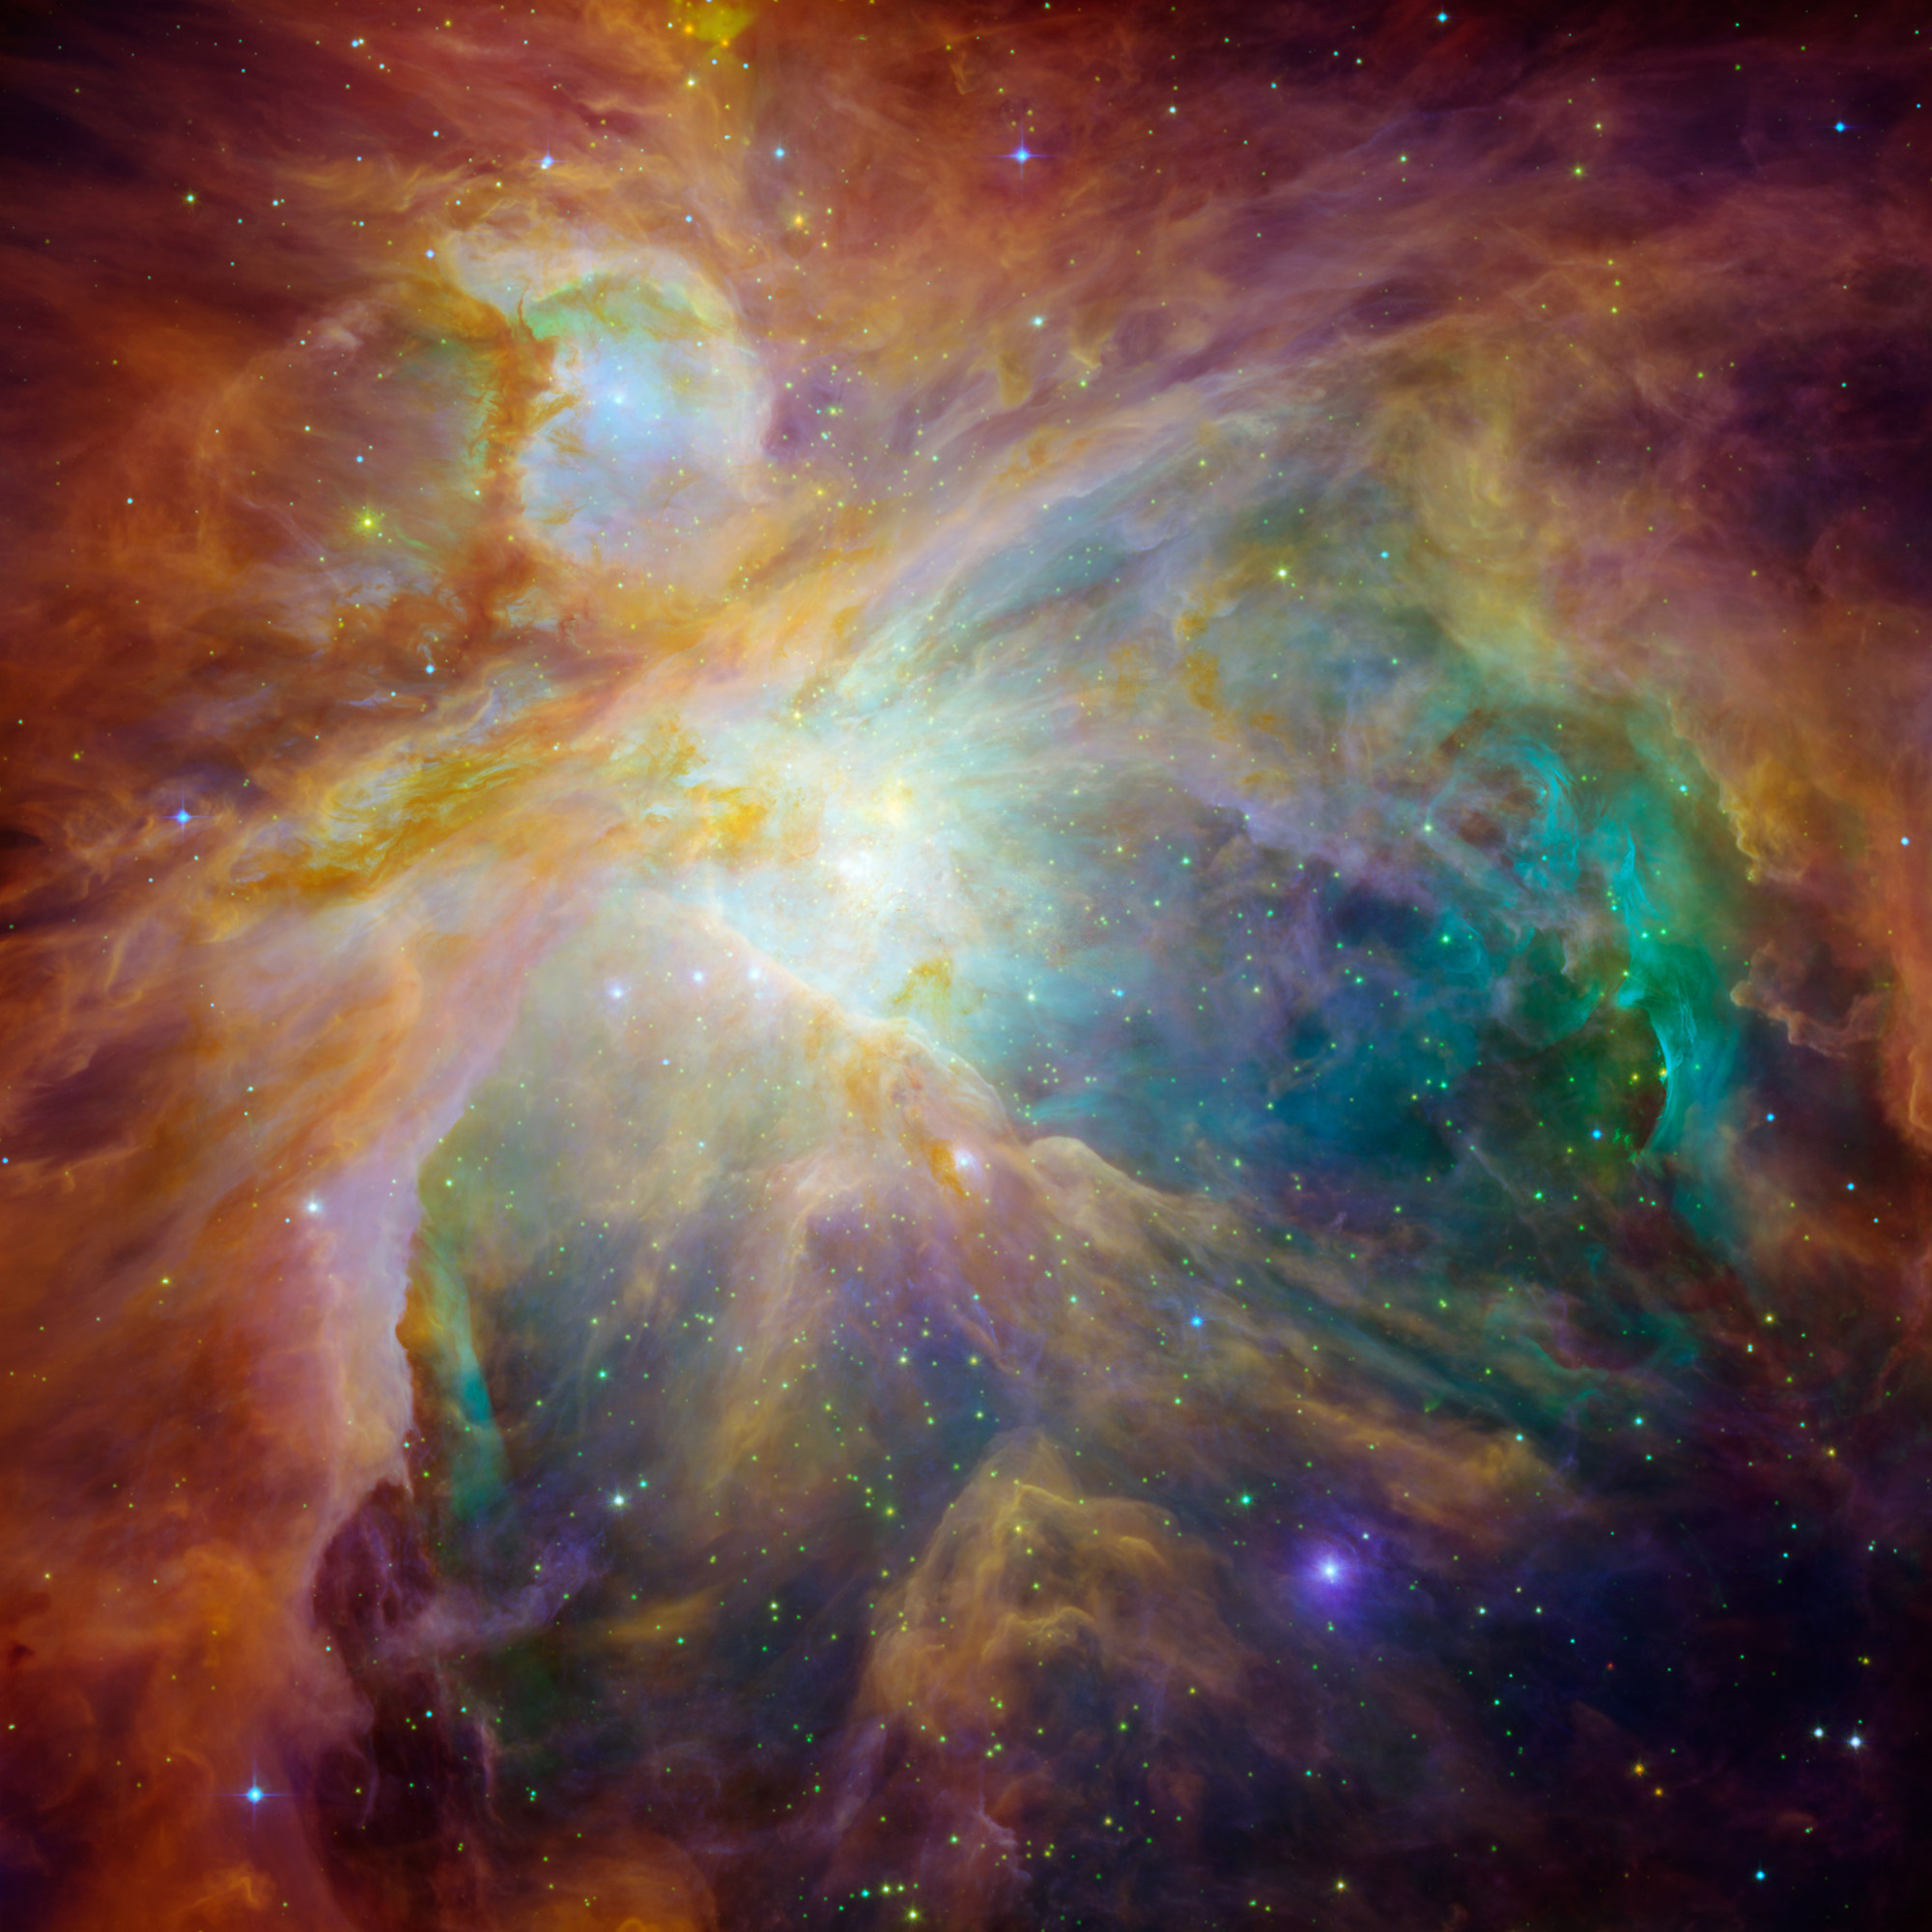 The Orion Nebula from Hubble